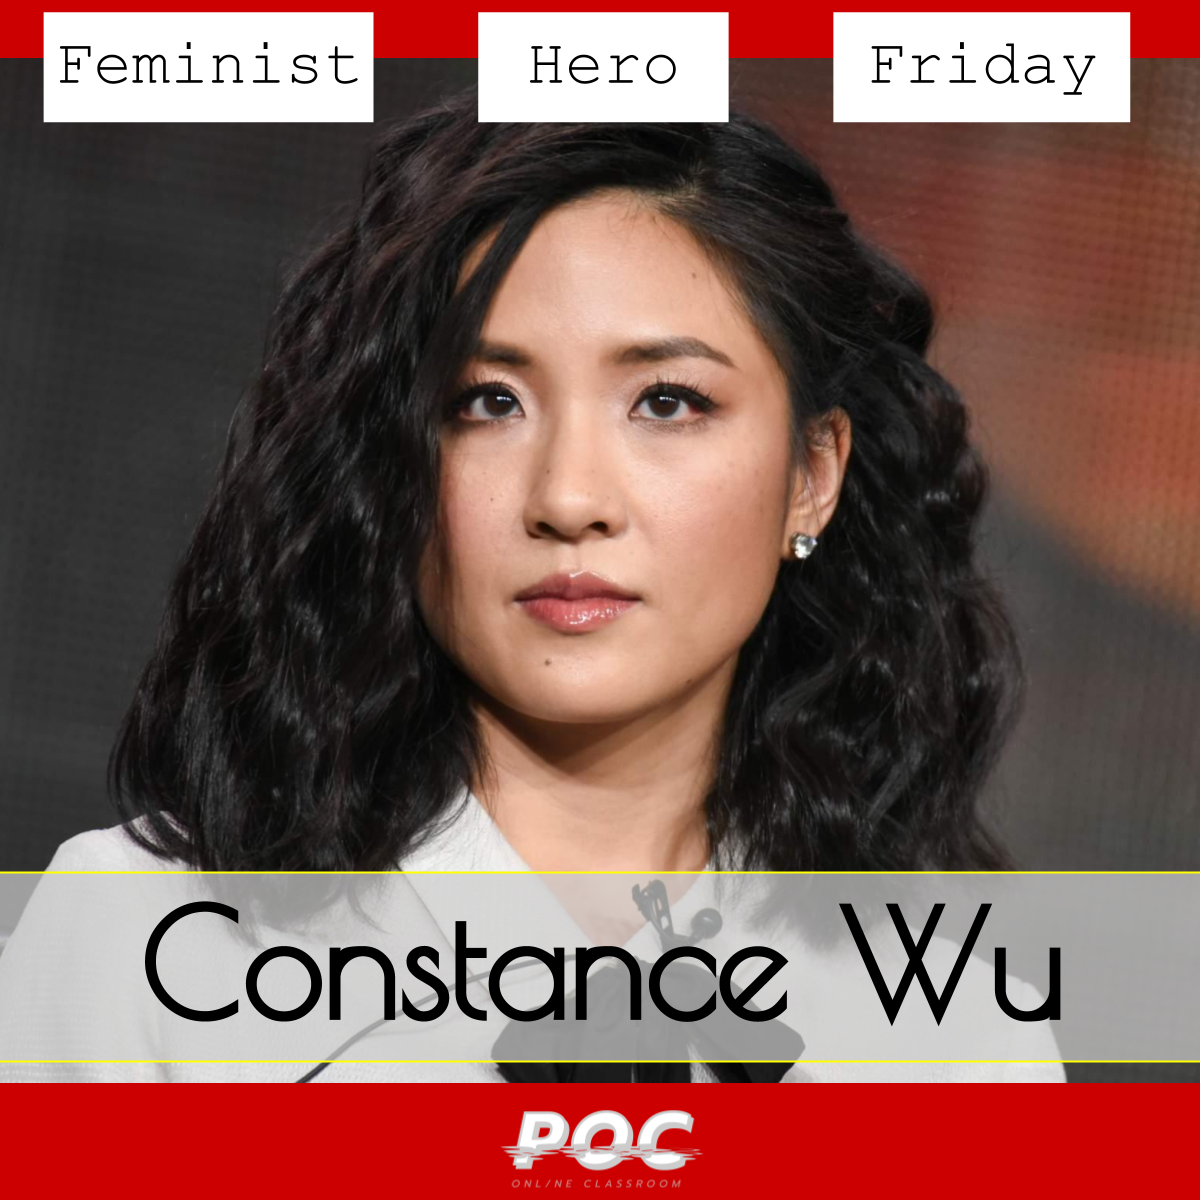 """Image has deep red background with a photo of Constance Wu looking past the camera. A the top is text reading """"Feminist Hero Friday,"""" and below, a text box outlined in yellow reading """"Constance Wu."""" The white and grey POC logo is on the bottom of the image. Original photo via  Celebrity Pictures ."""